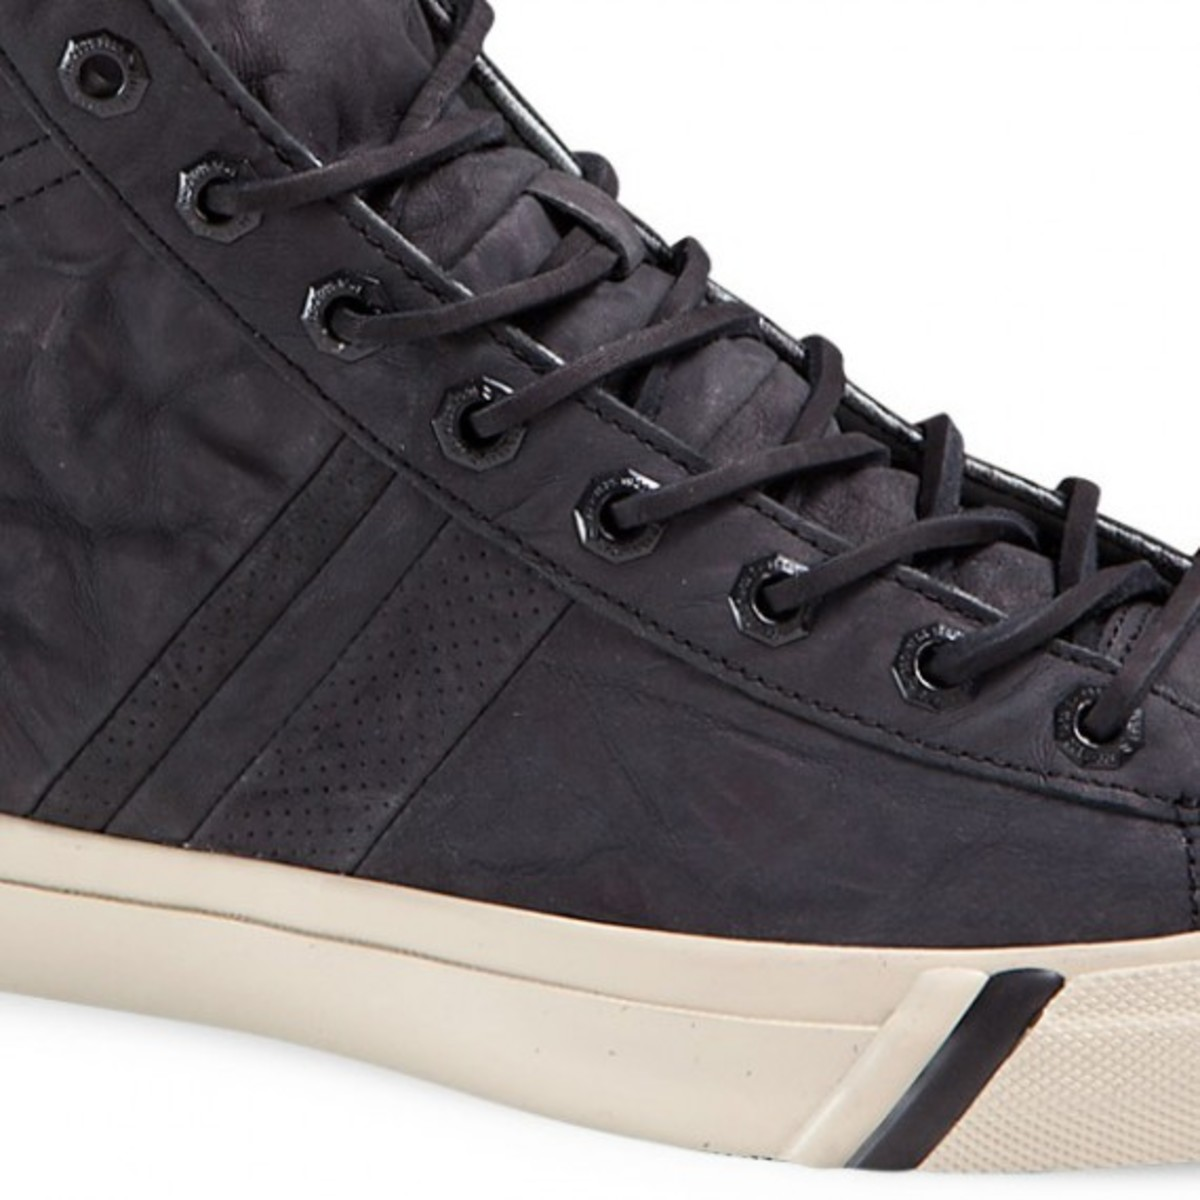 royal-plus-hi-nubuck-06